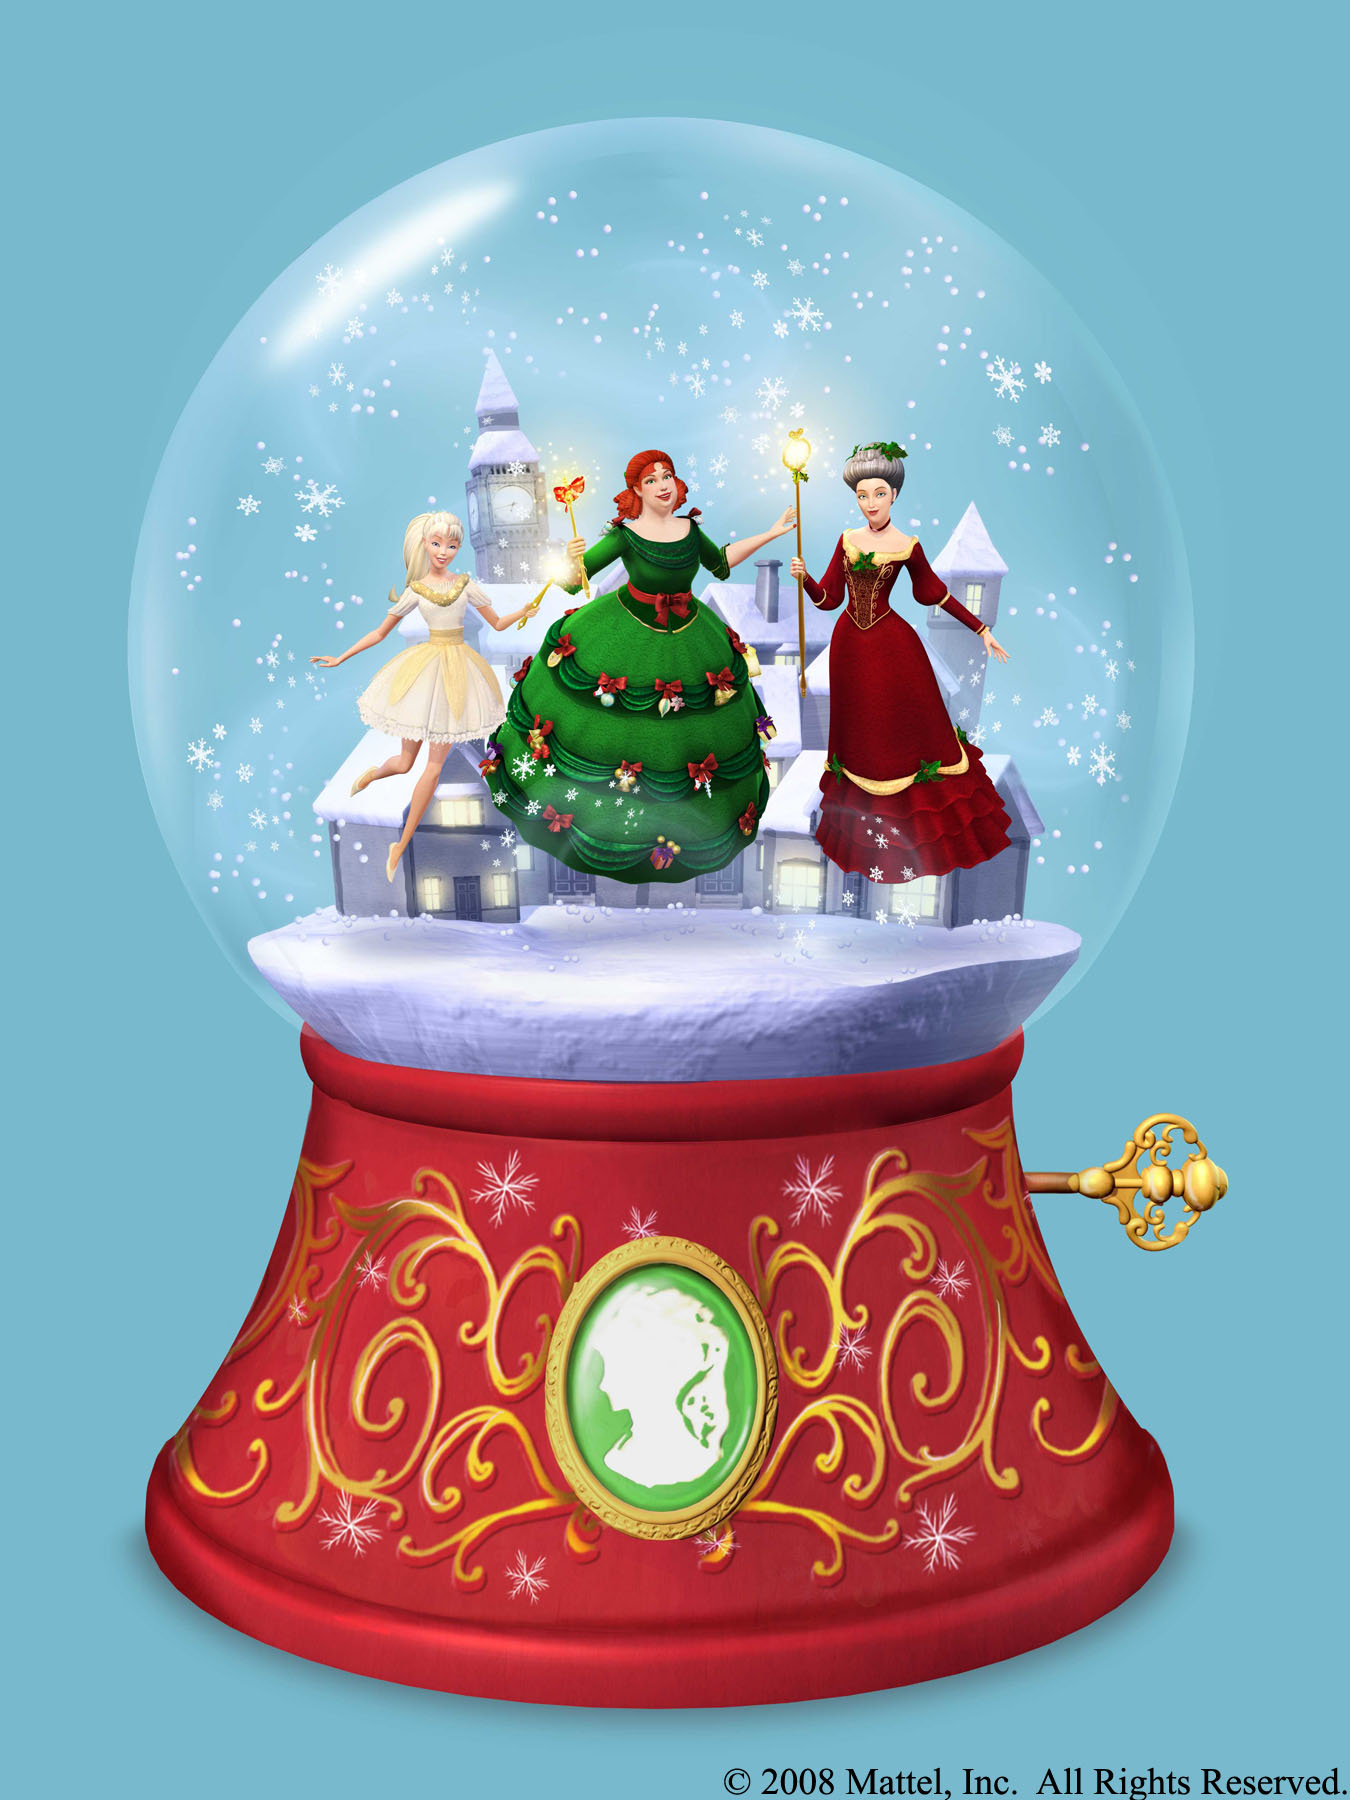 click on the image for the large desktop background version - Barbie A Christmas Carol